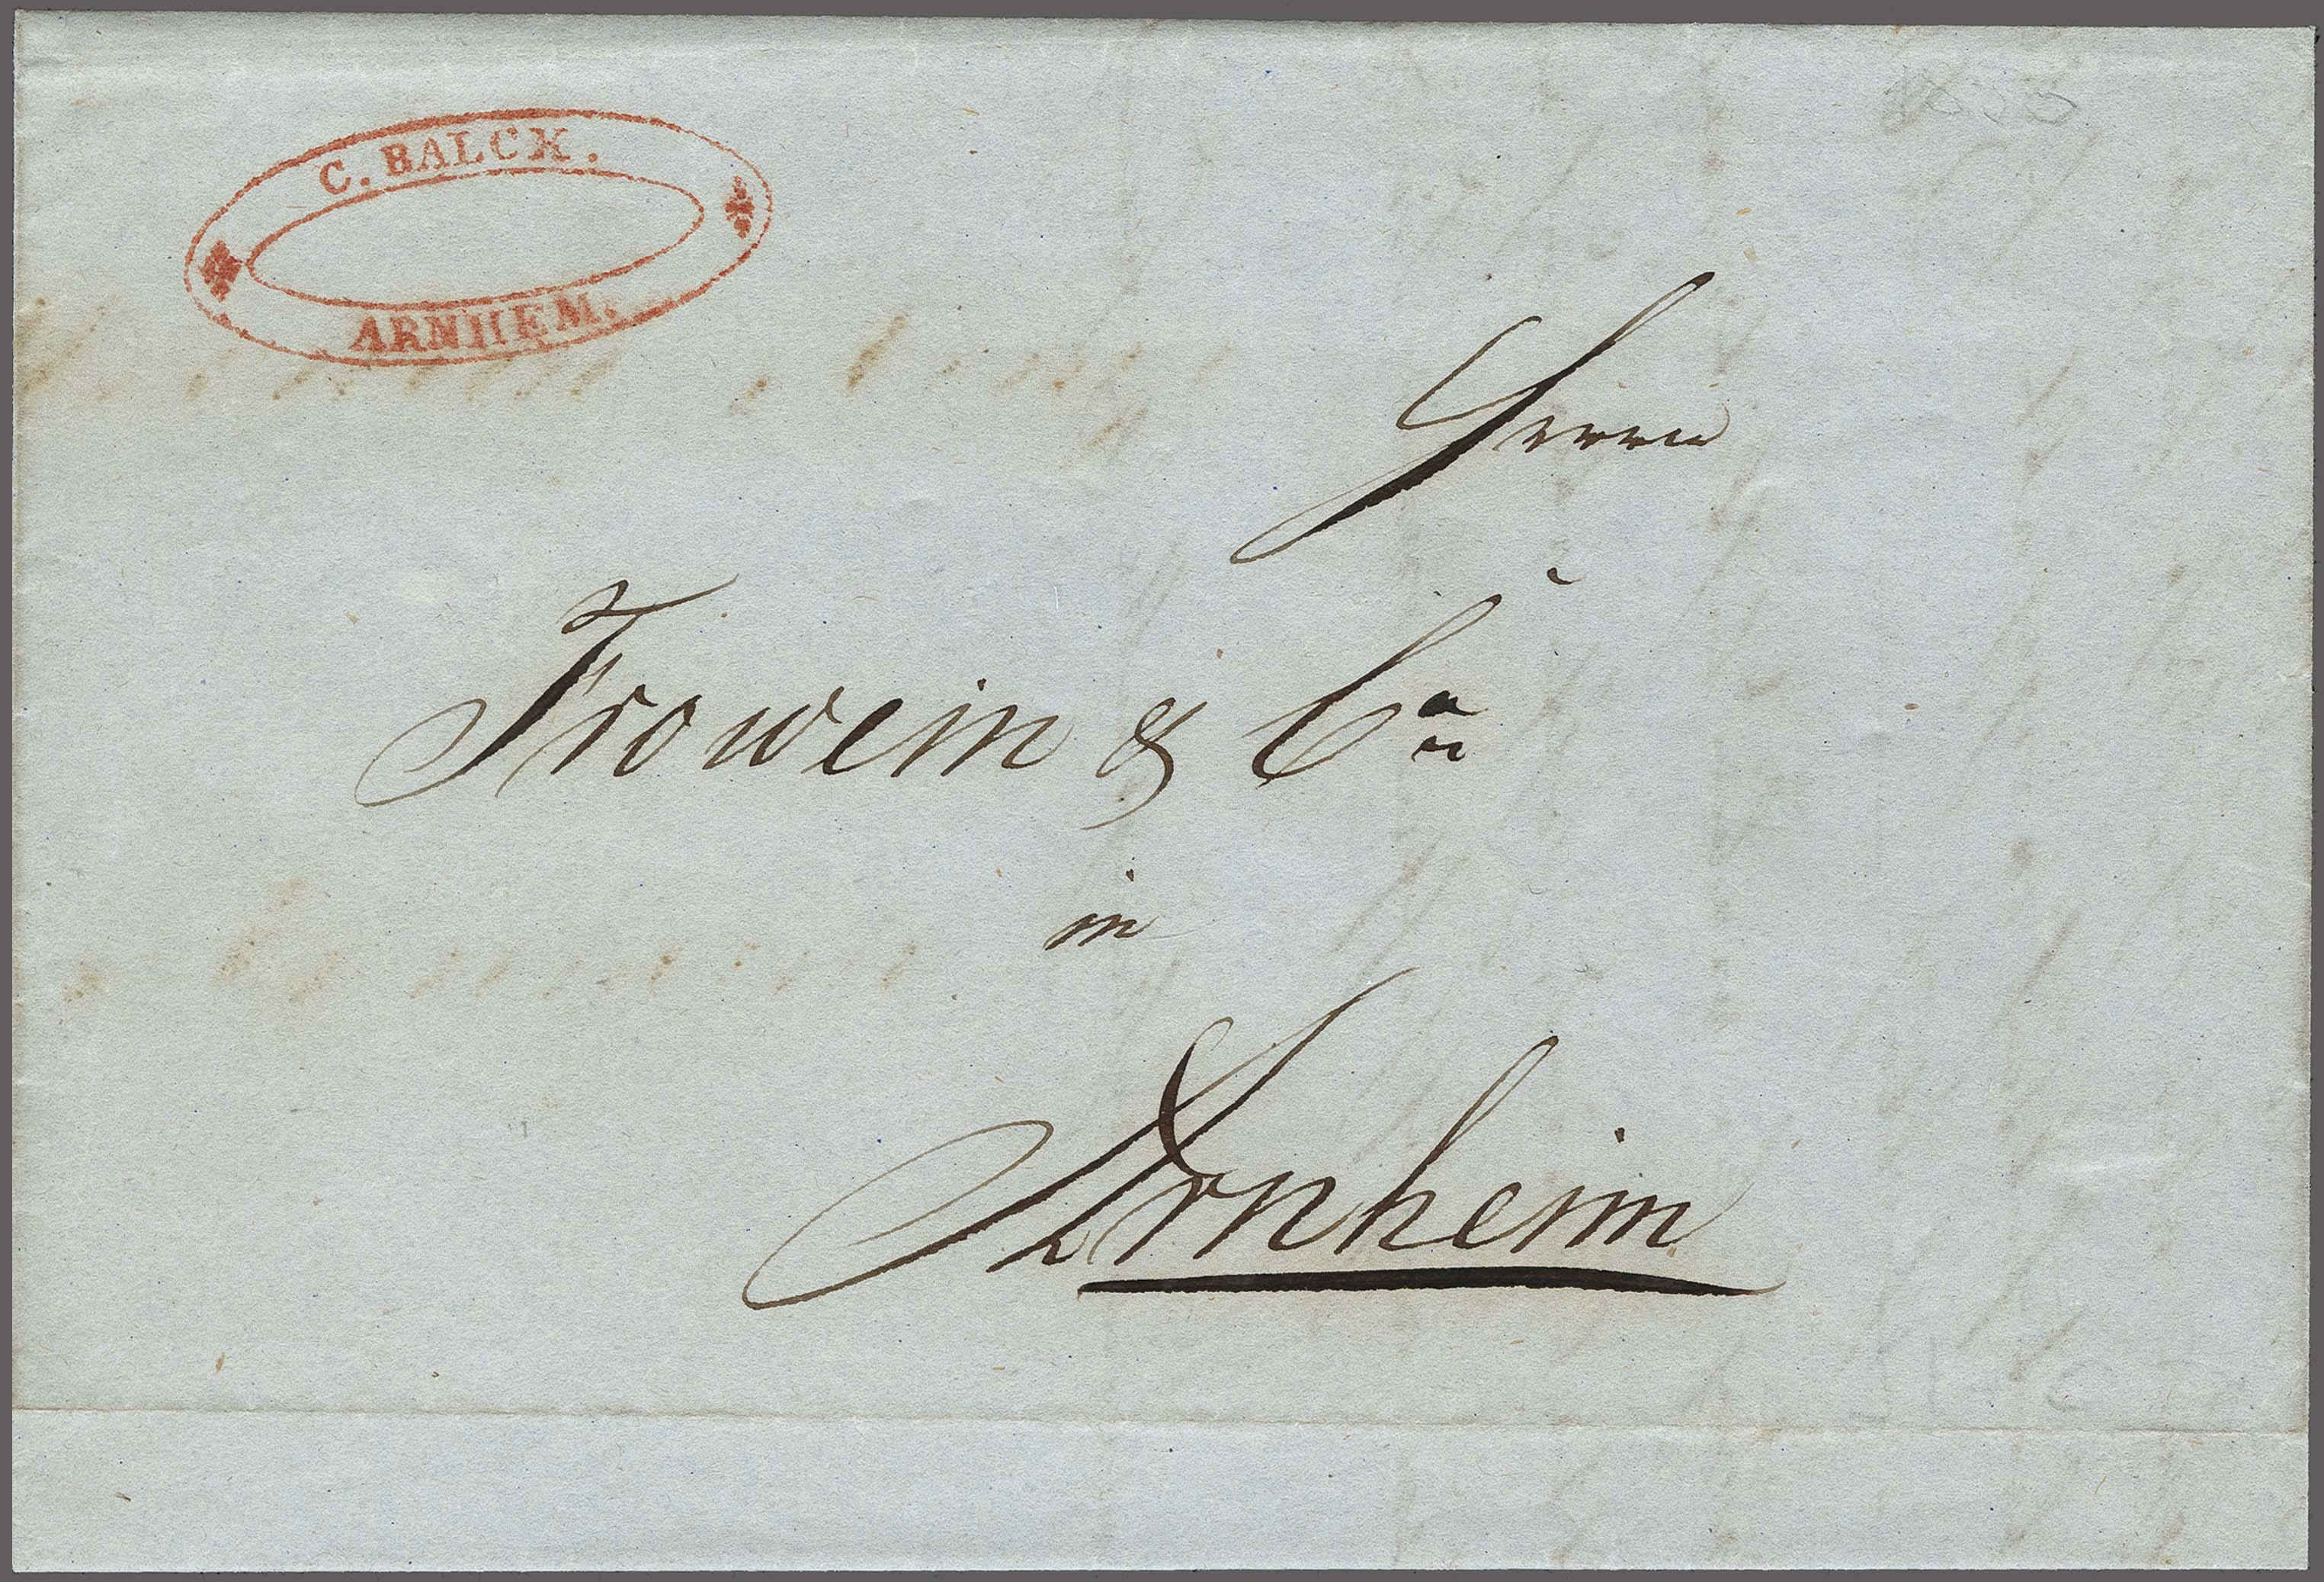 Lot 2429 - Netherlands and former colonies Netherlands -  Corinphila Veilingen Auction 250-253 - Day 3 - Netherlands and former colonies - Single lots & Picture postcards